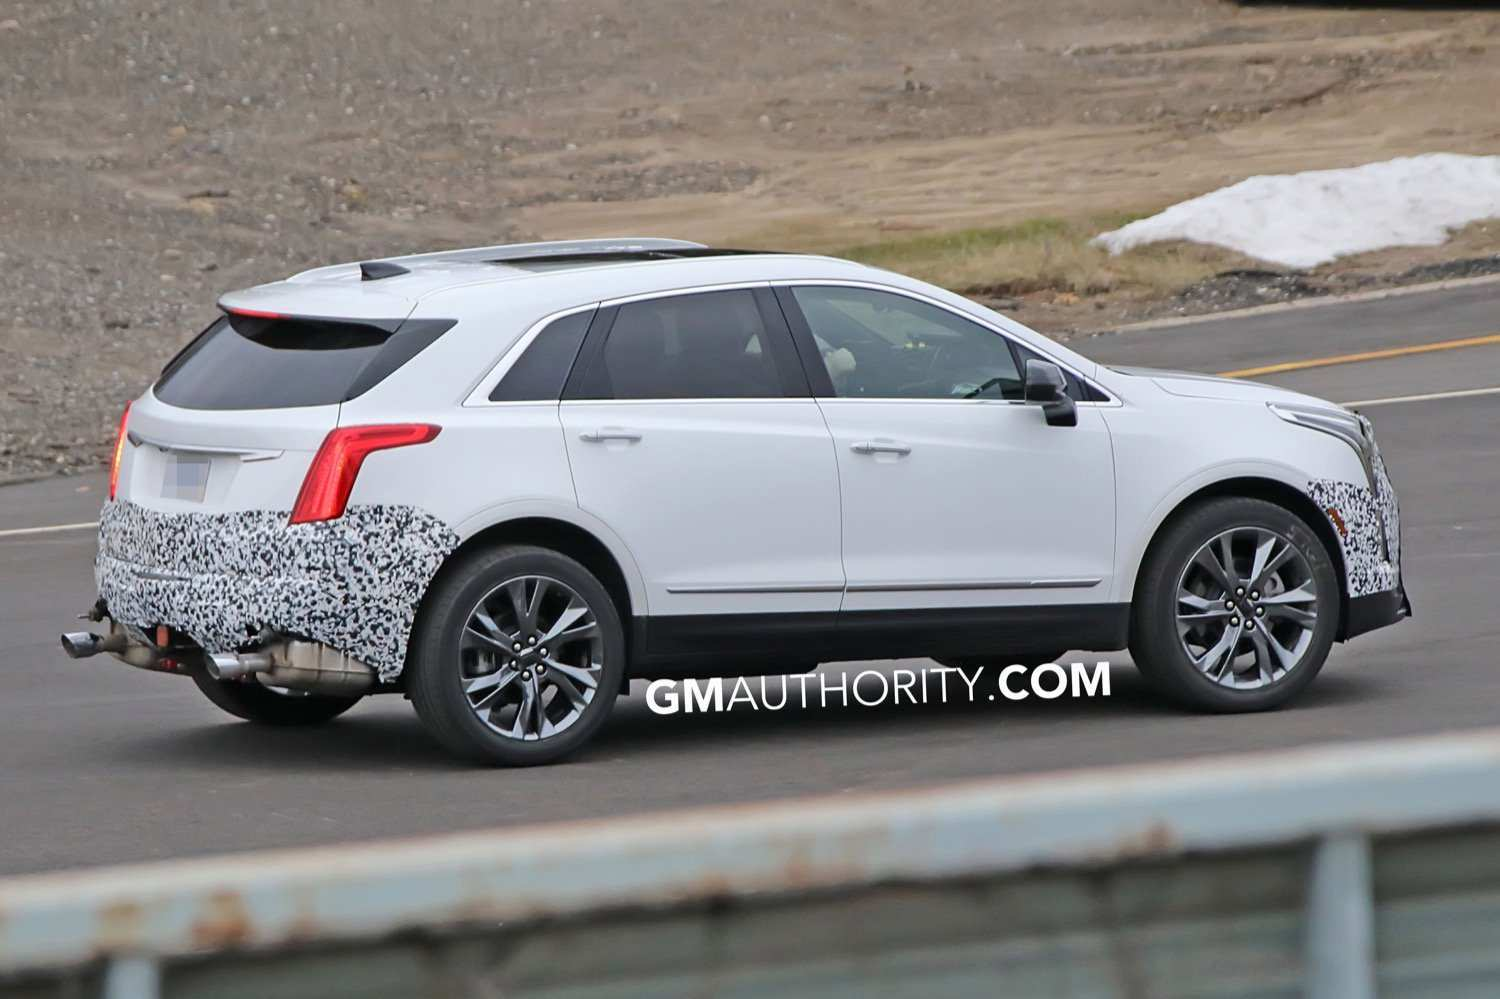 72 All New 2019 Spy Shots Cadillac Xt5 Images